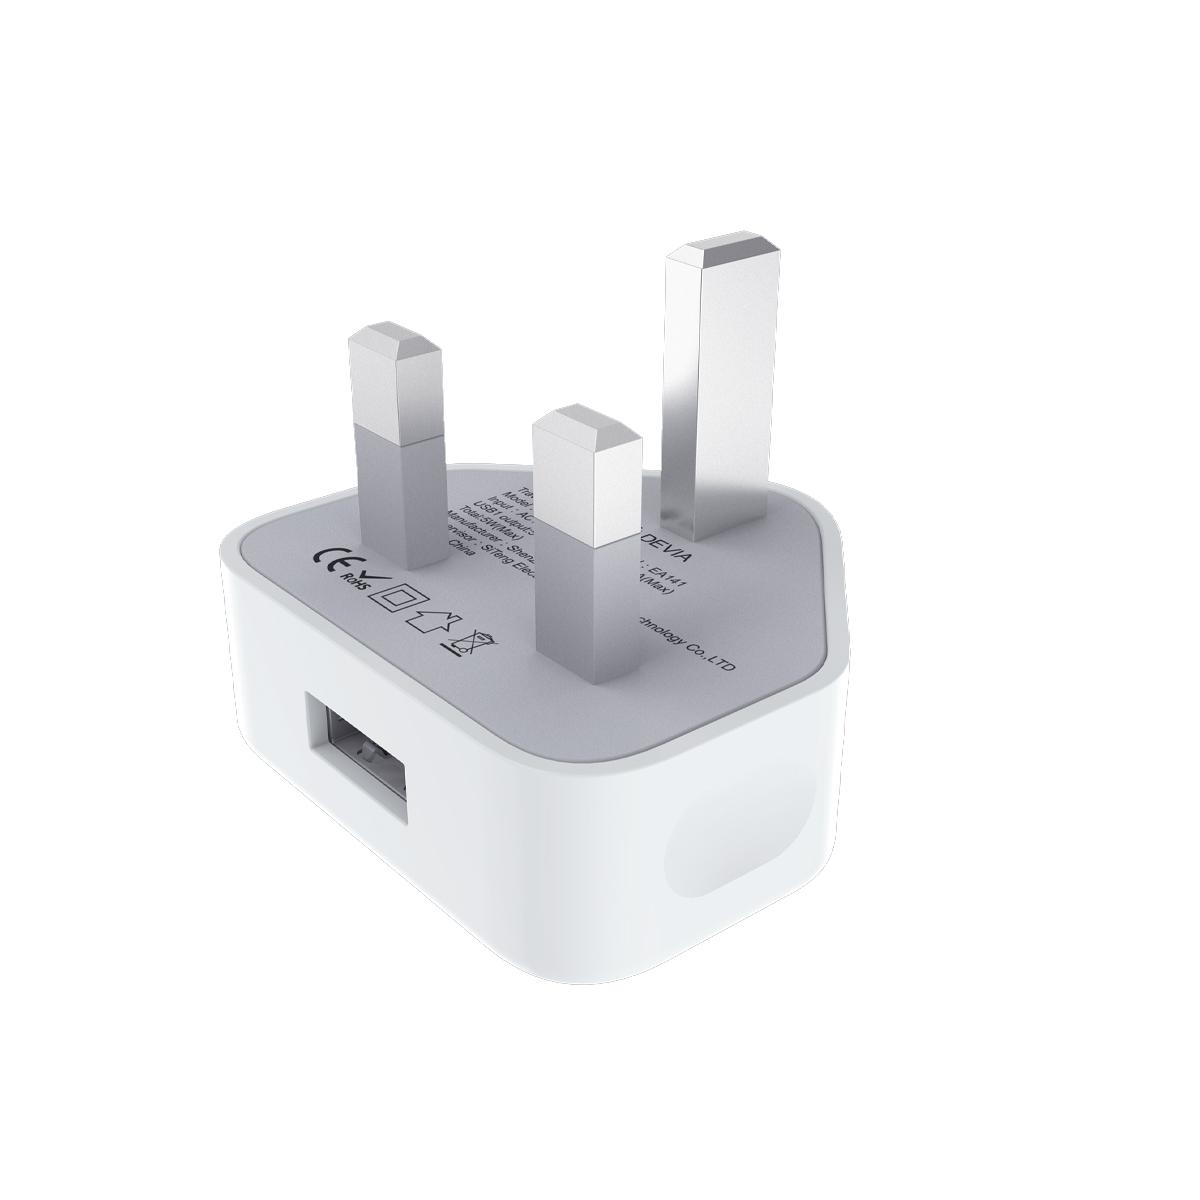 Devia USB Charger Plug 2.1A with Lightning Cable - White